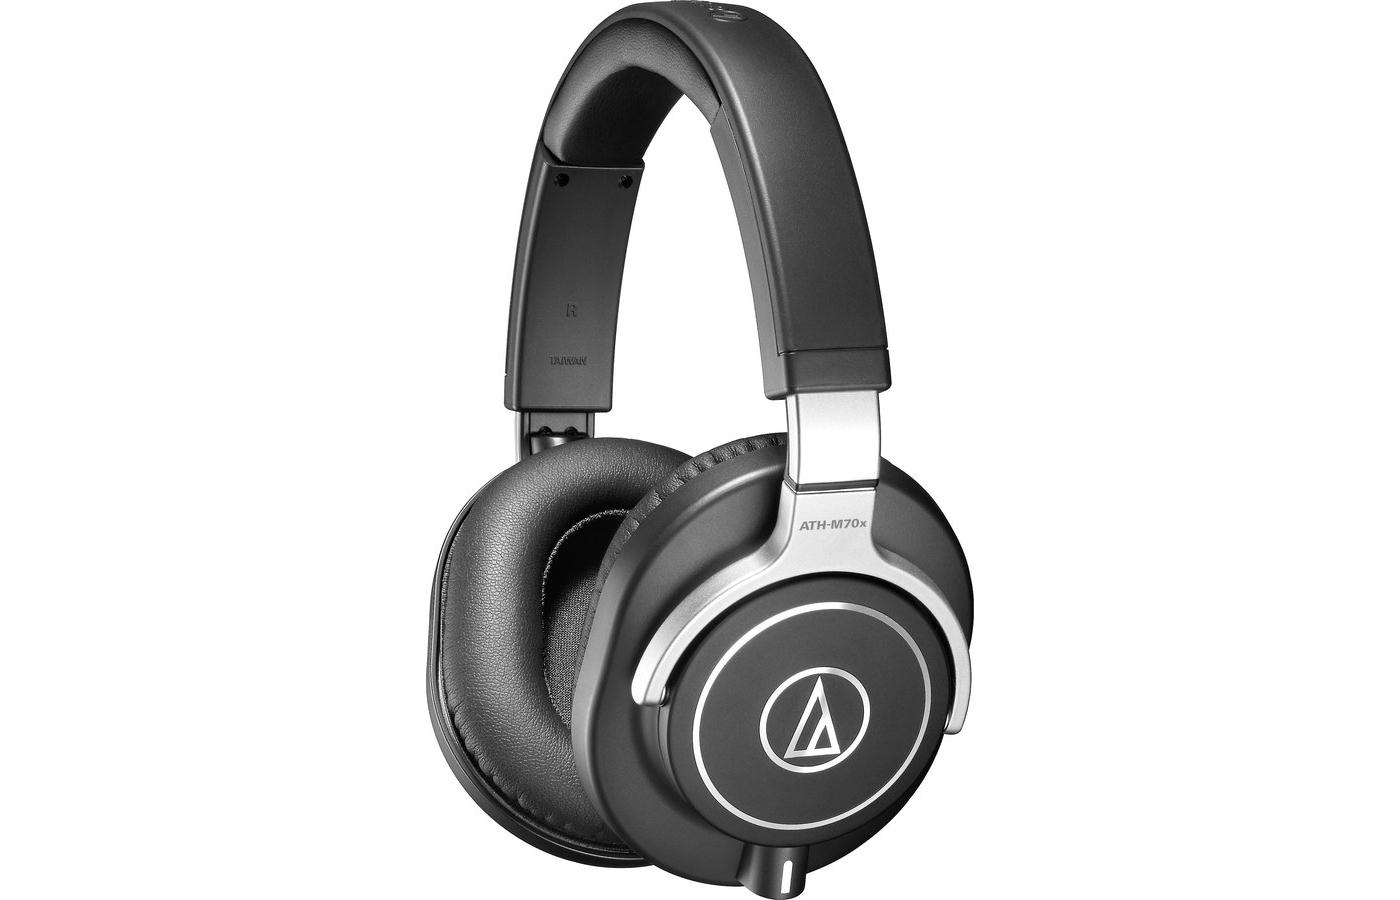 Audio-Technica ATH-M70X Headphones